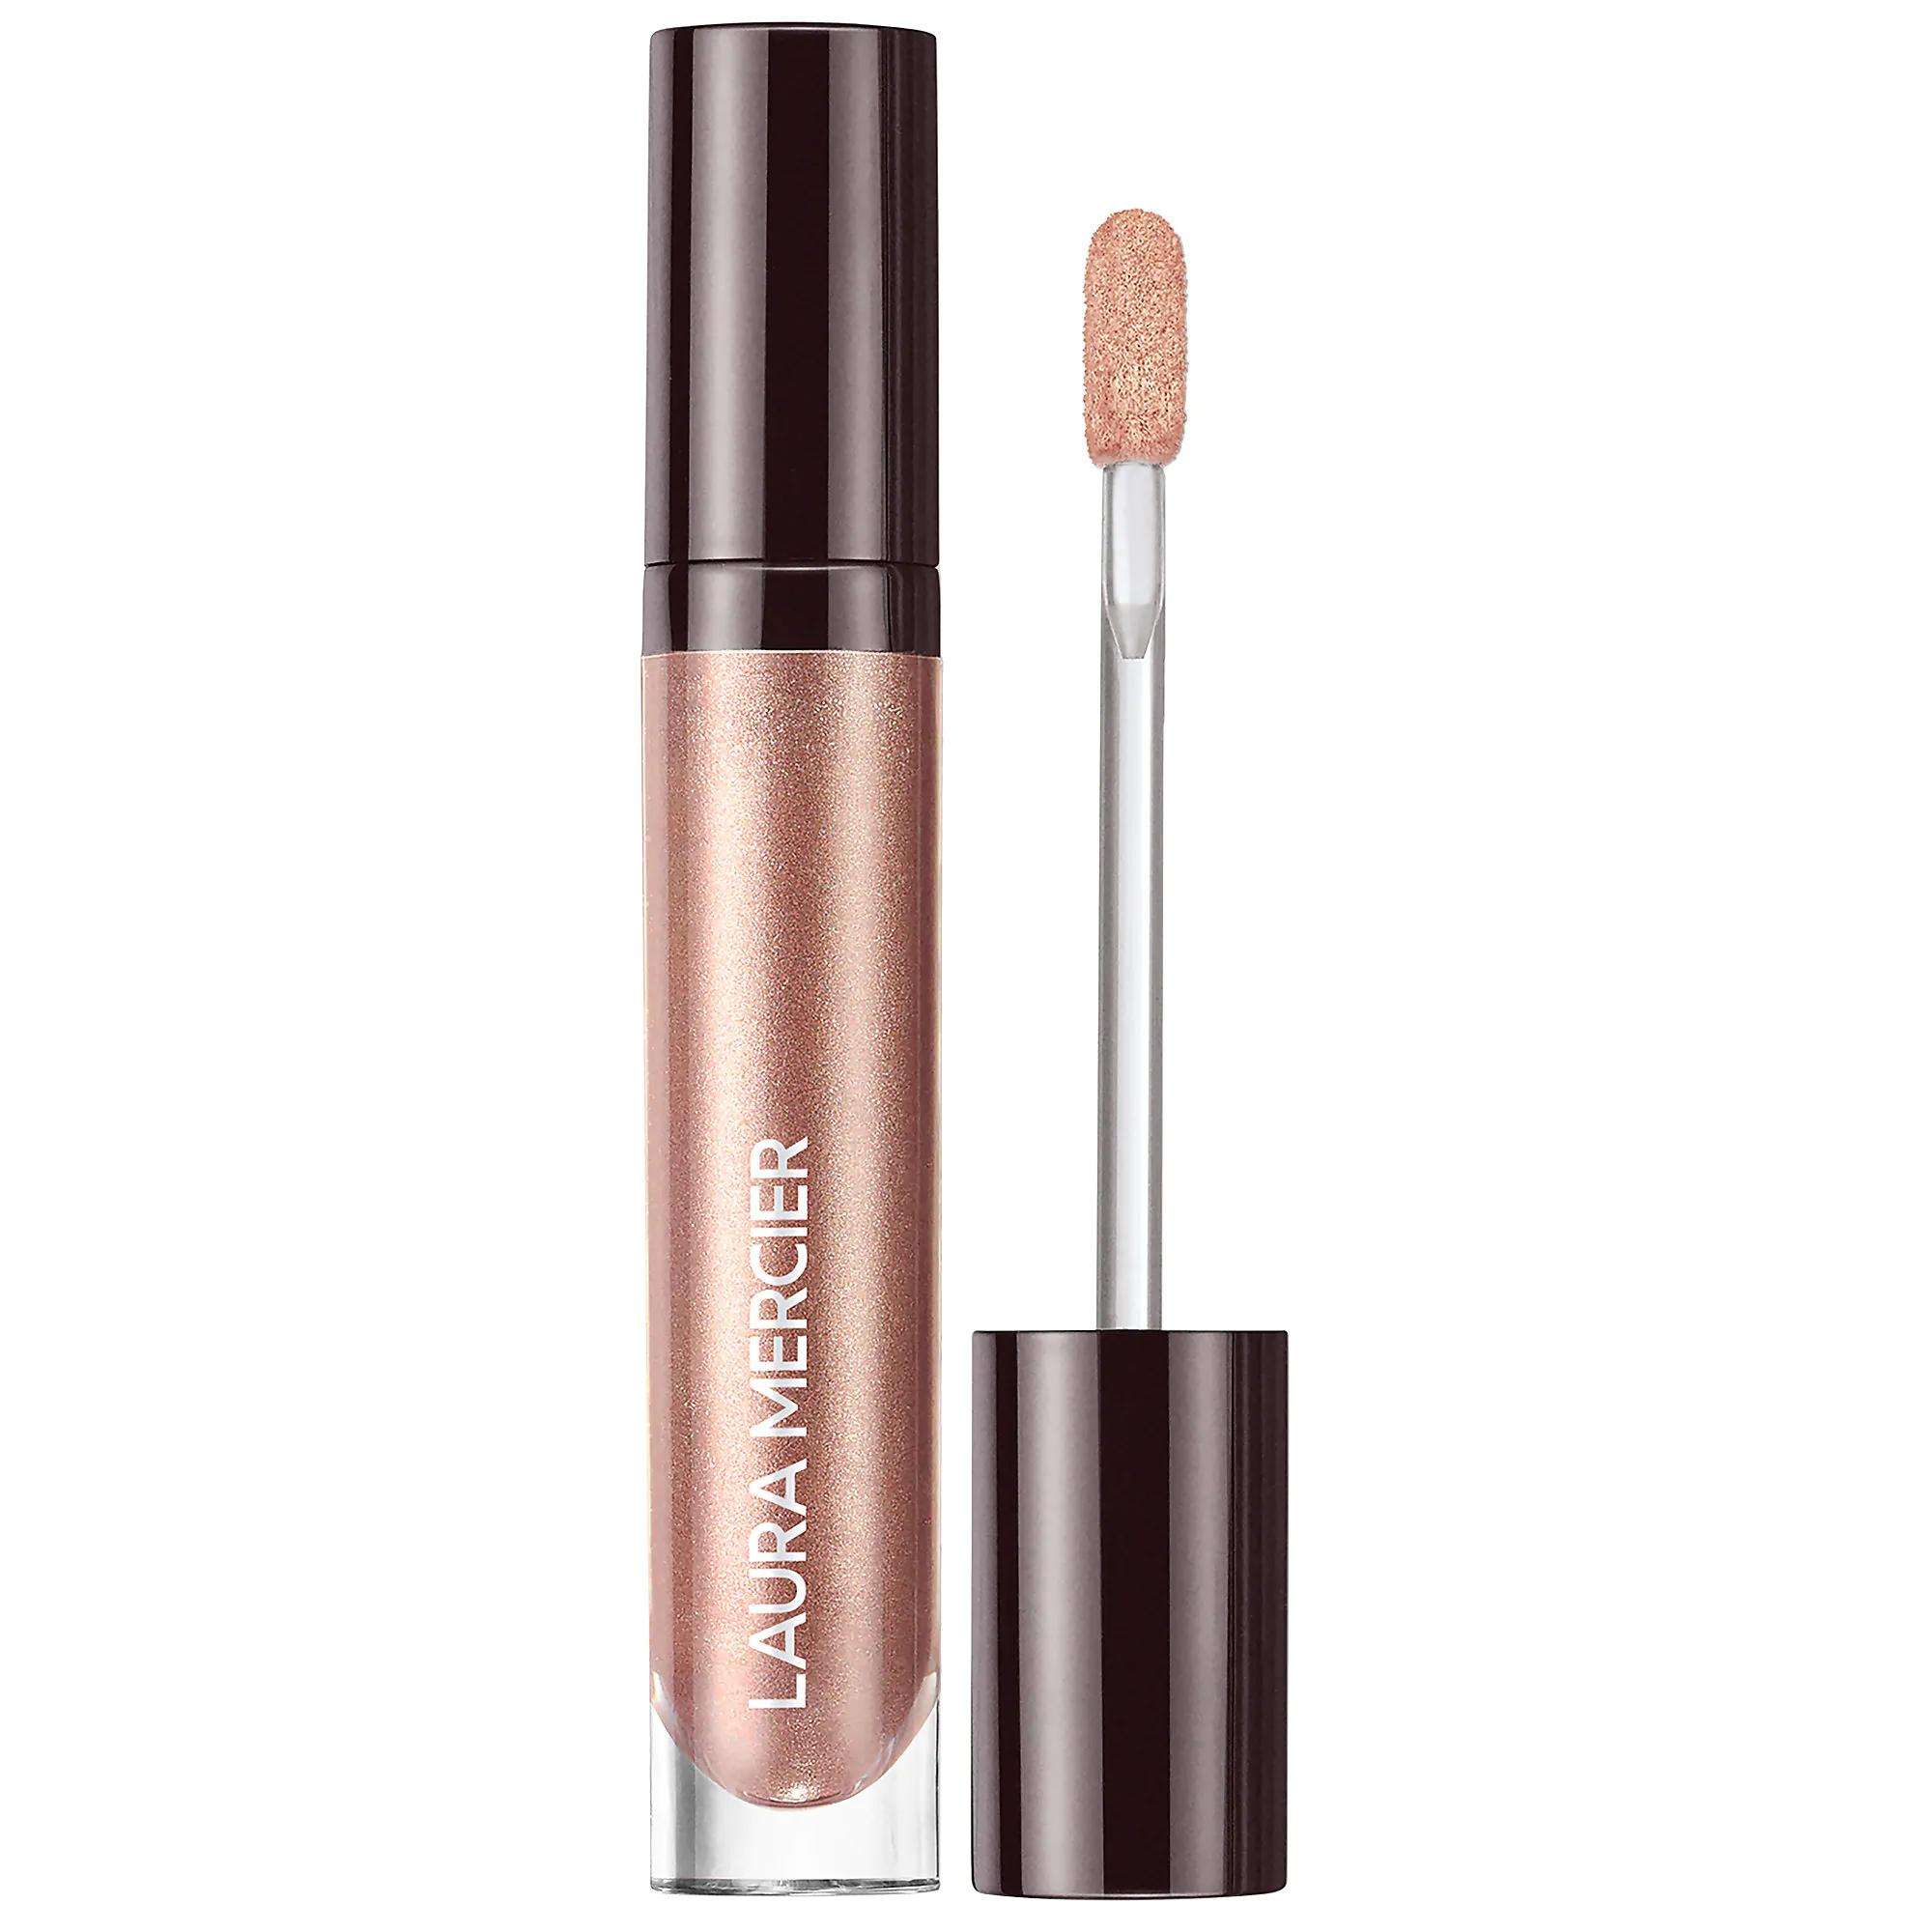 Laura Mercier Caviar Chrome Veil Liquid Eyeshadow Gilded Fresco